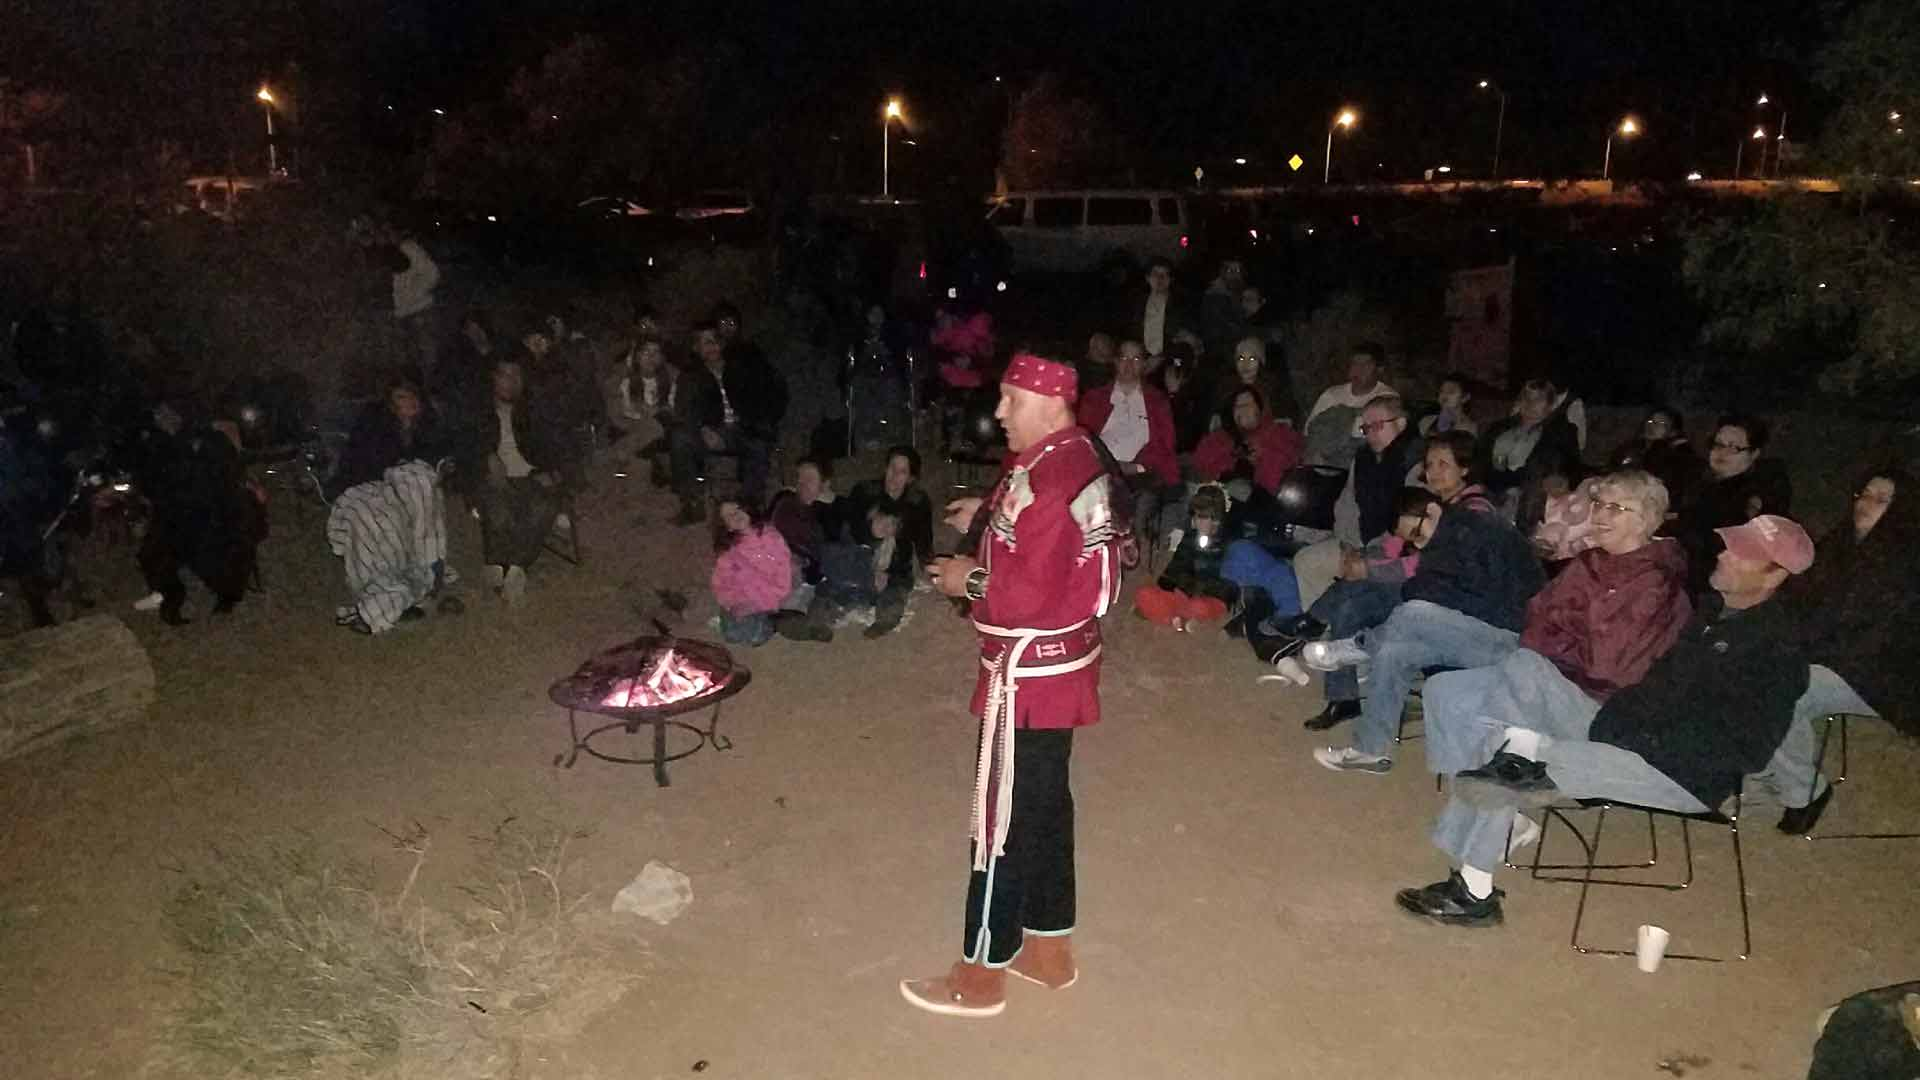 Alex Mares stands in front of a fire pit surrounded by people seeted in camping chairs with coats and blankets